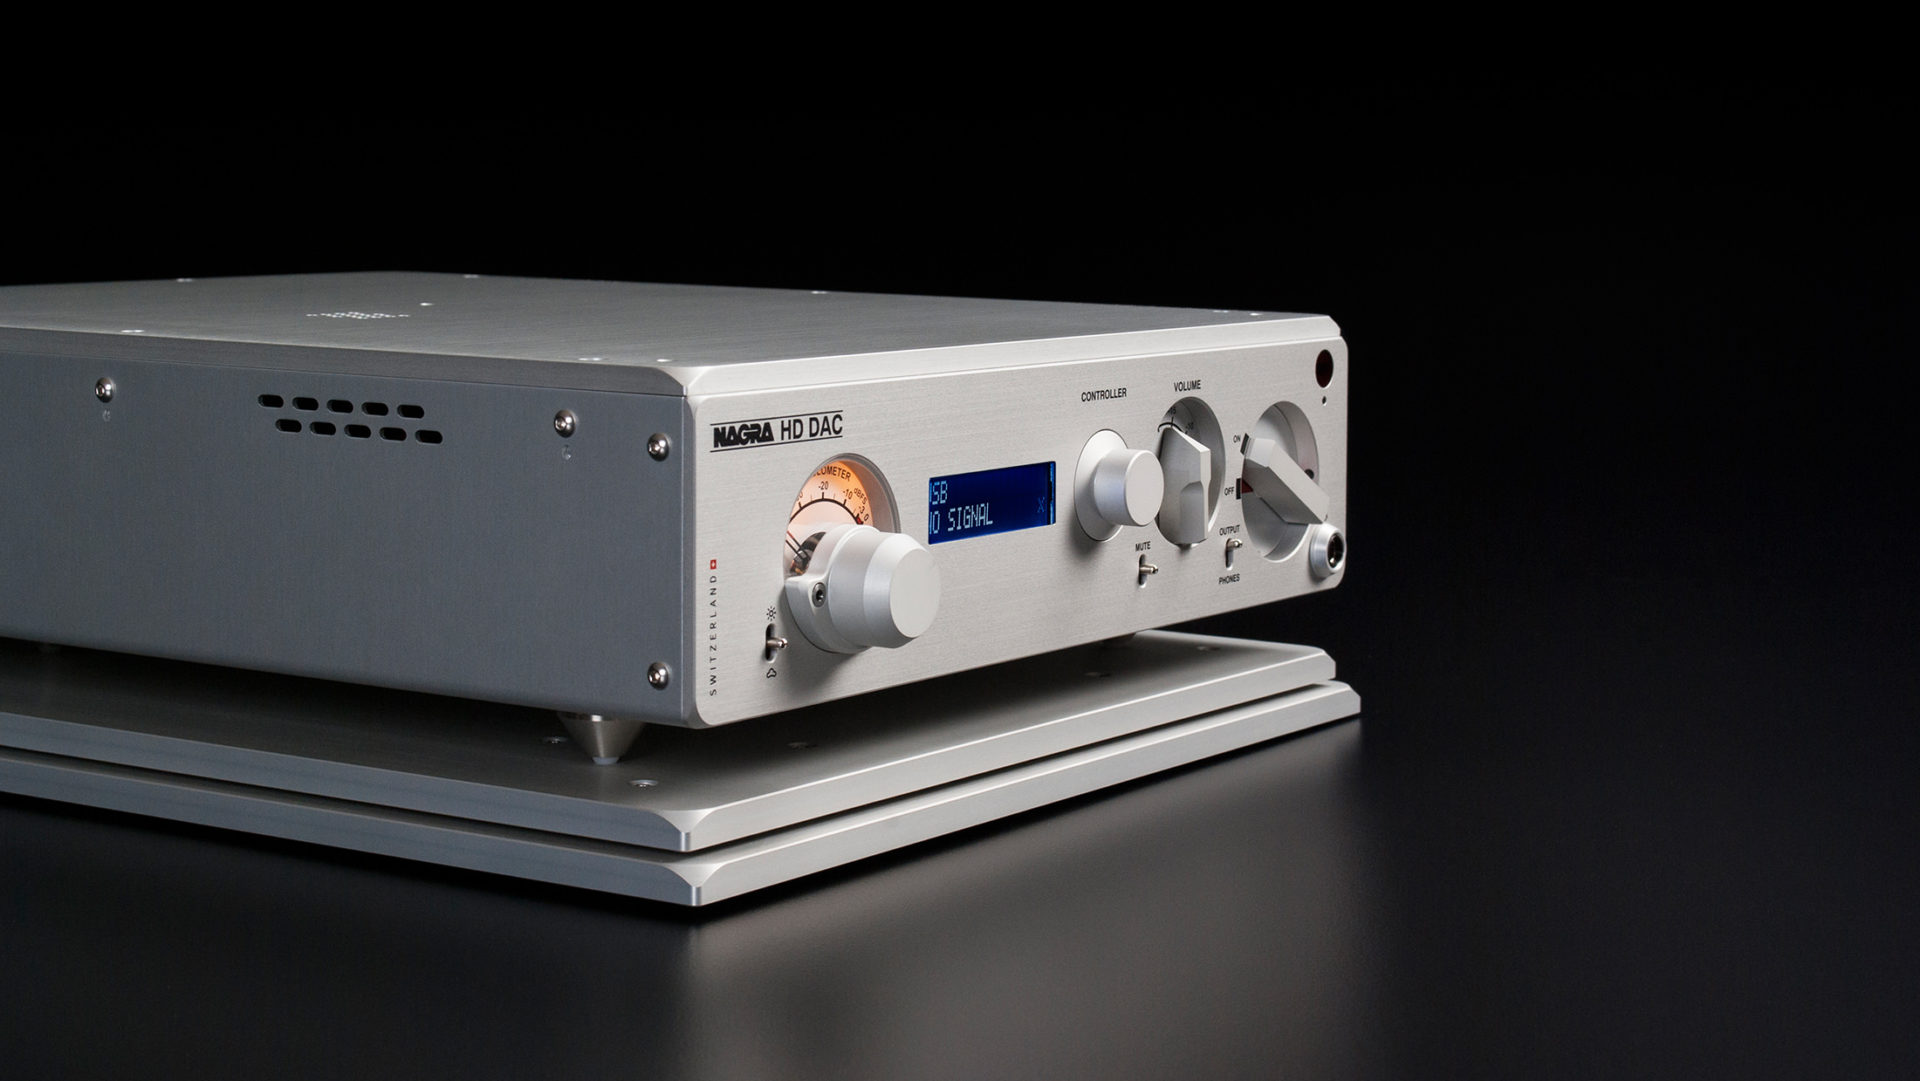 Nagra HD DAC modulo best digital to analog converter side